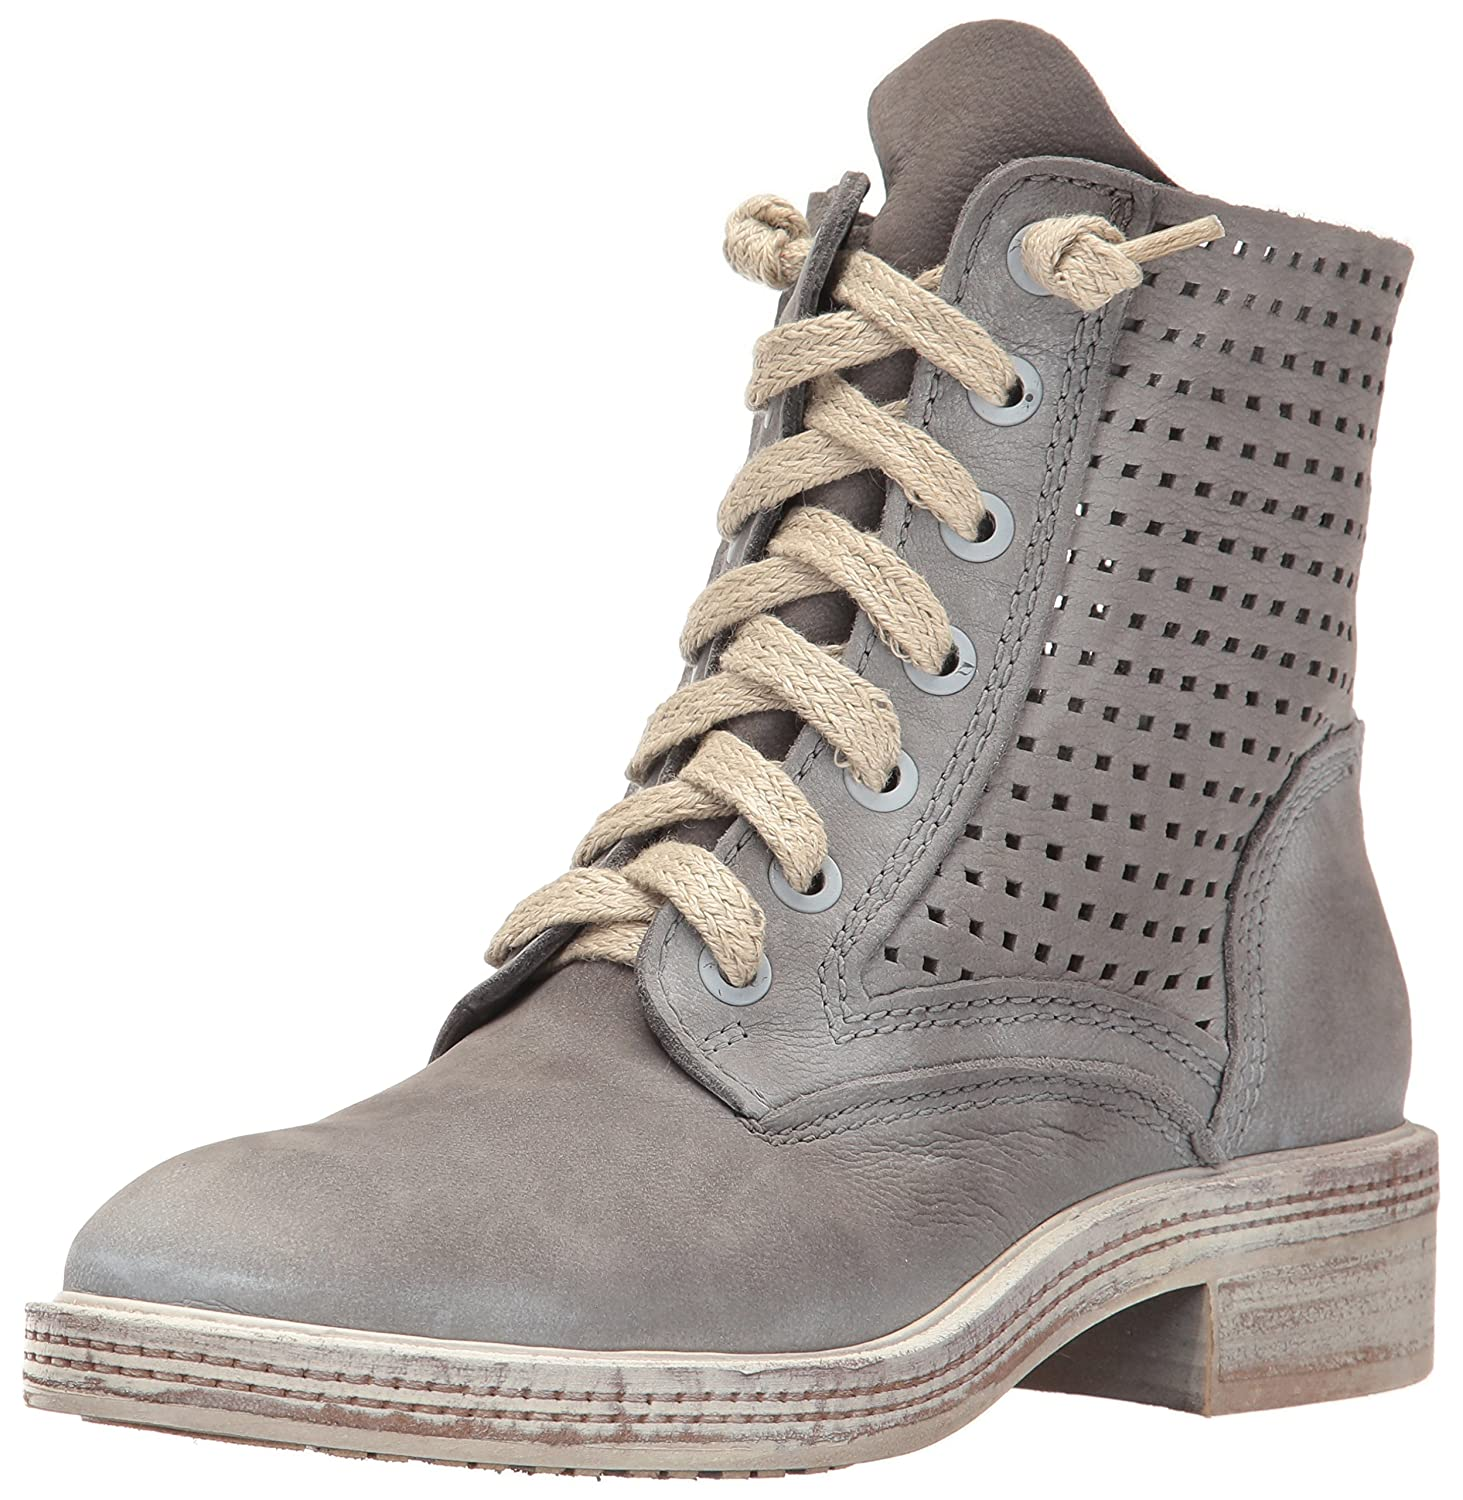 Dolce Vita Women's Aldis Combat Boot B01N2I01F7 6 B(M) US|Smoke Perforated Nubuck